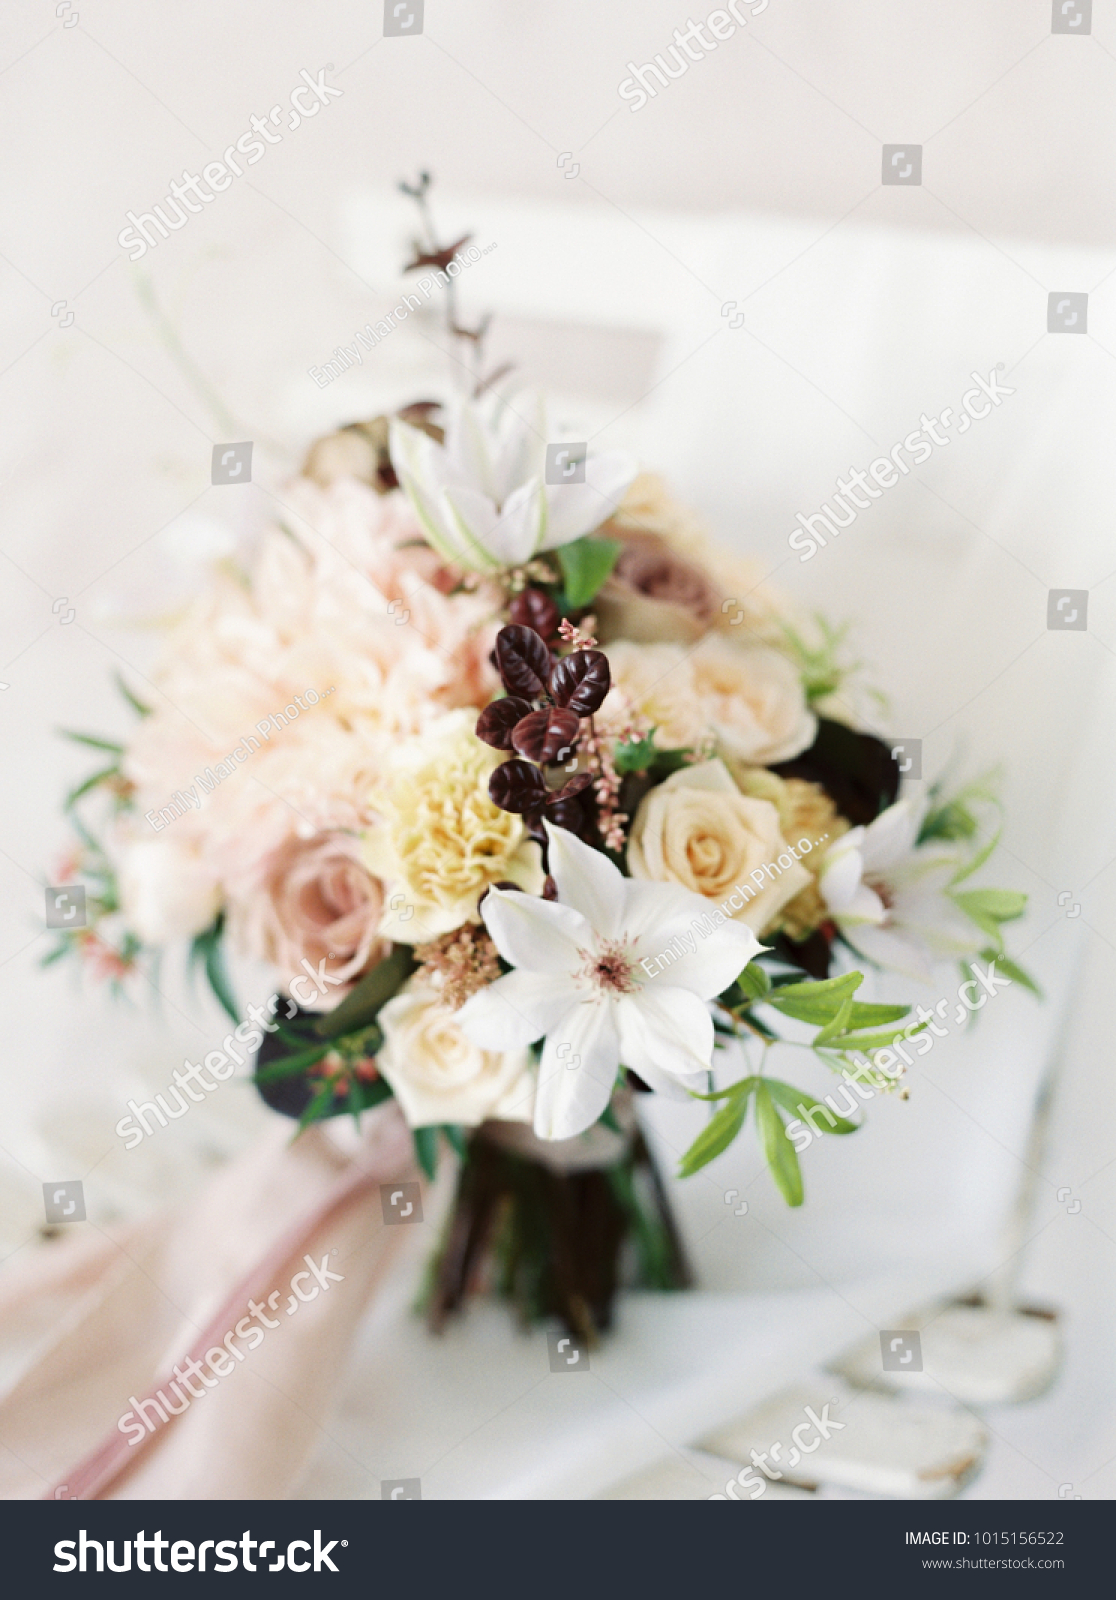 Muted wedding bouquet pink purple flowers stock photo edit now muted wedding bouquet with pink and purple flowers sits on a white bistro chair izmirmasajfo